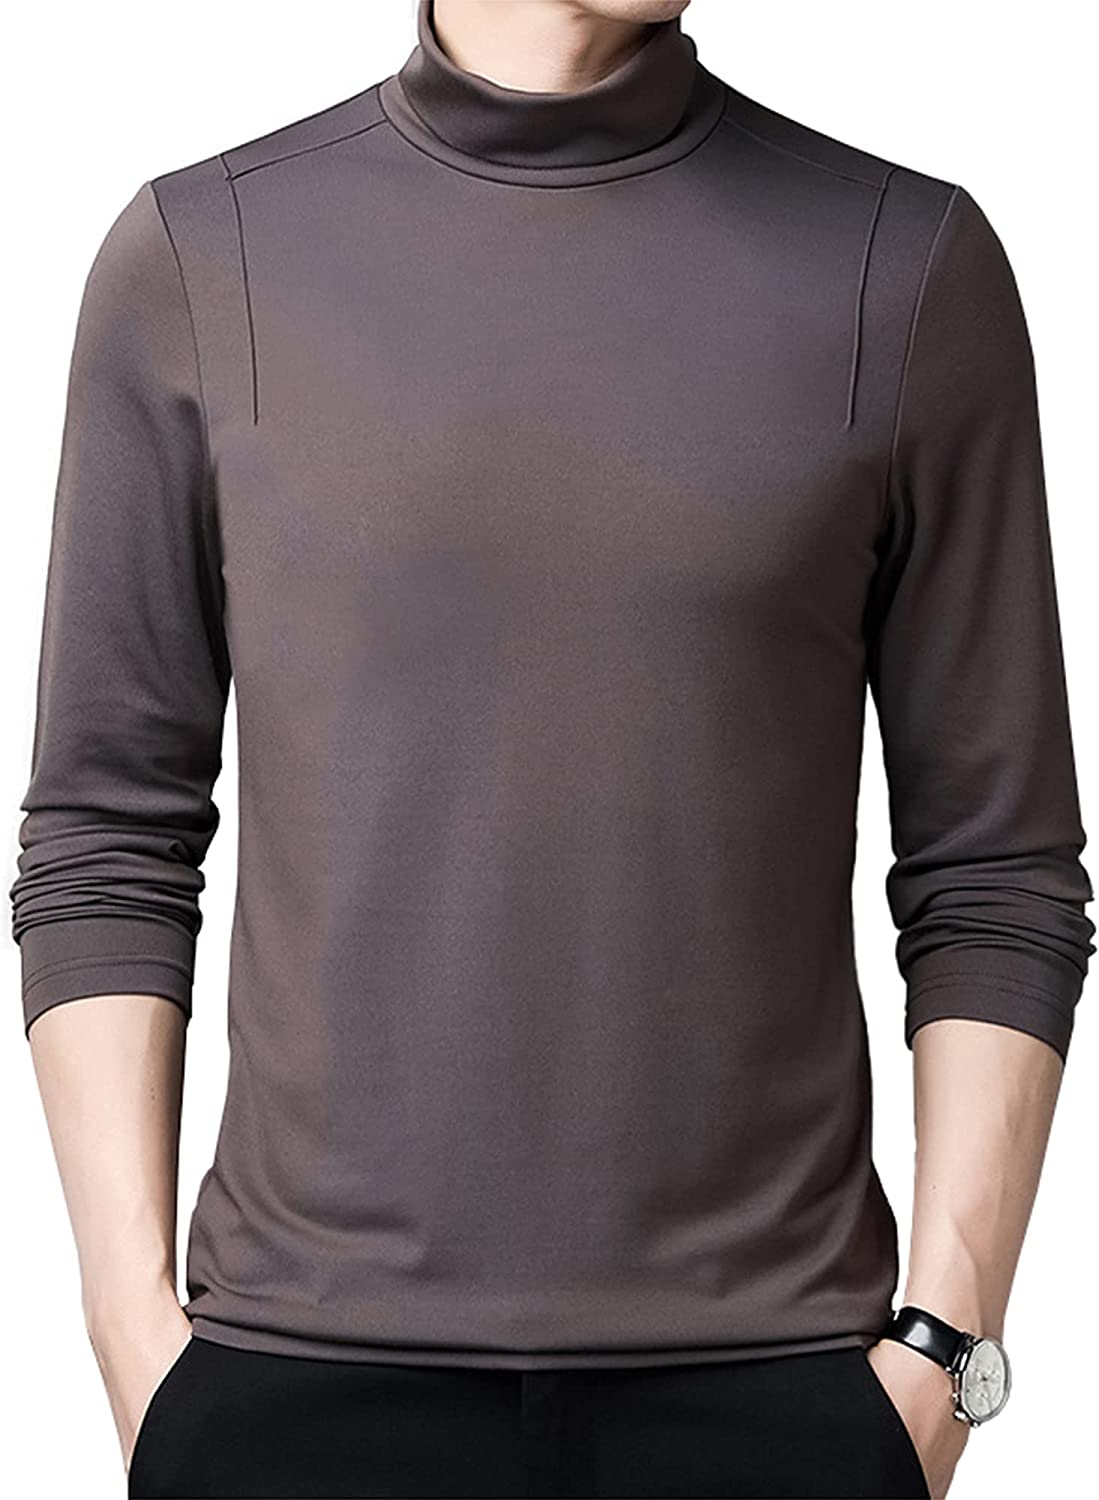 LZJDS Mens Thermal Baselayer Top - Modal Cotton Sweater Roll Neck Jumper Breathable Quick Drying & Fitted Sleeves - for Everyday Use,Brown,180